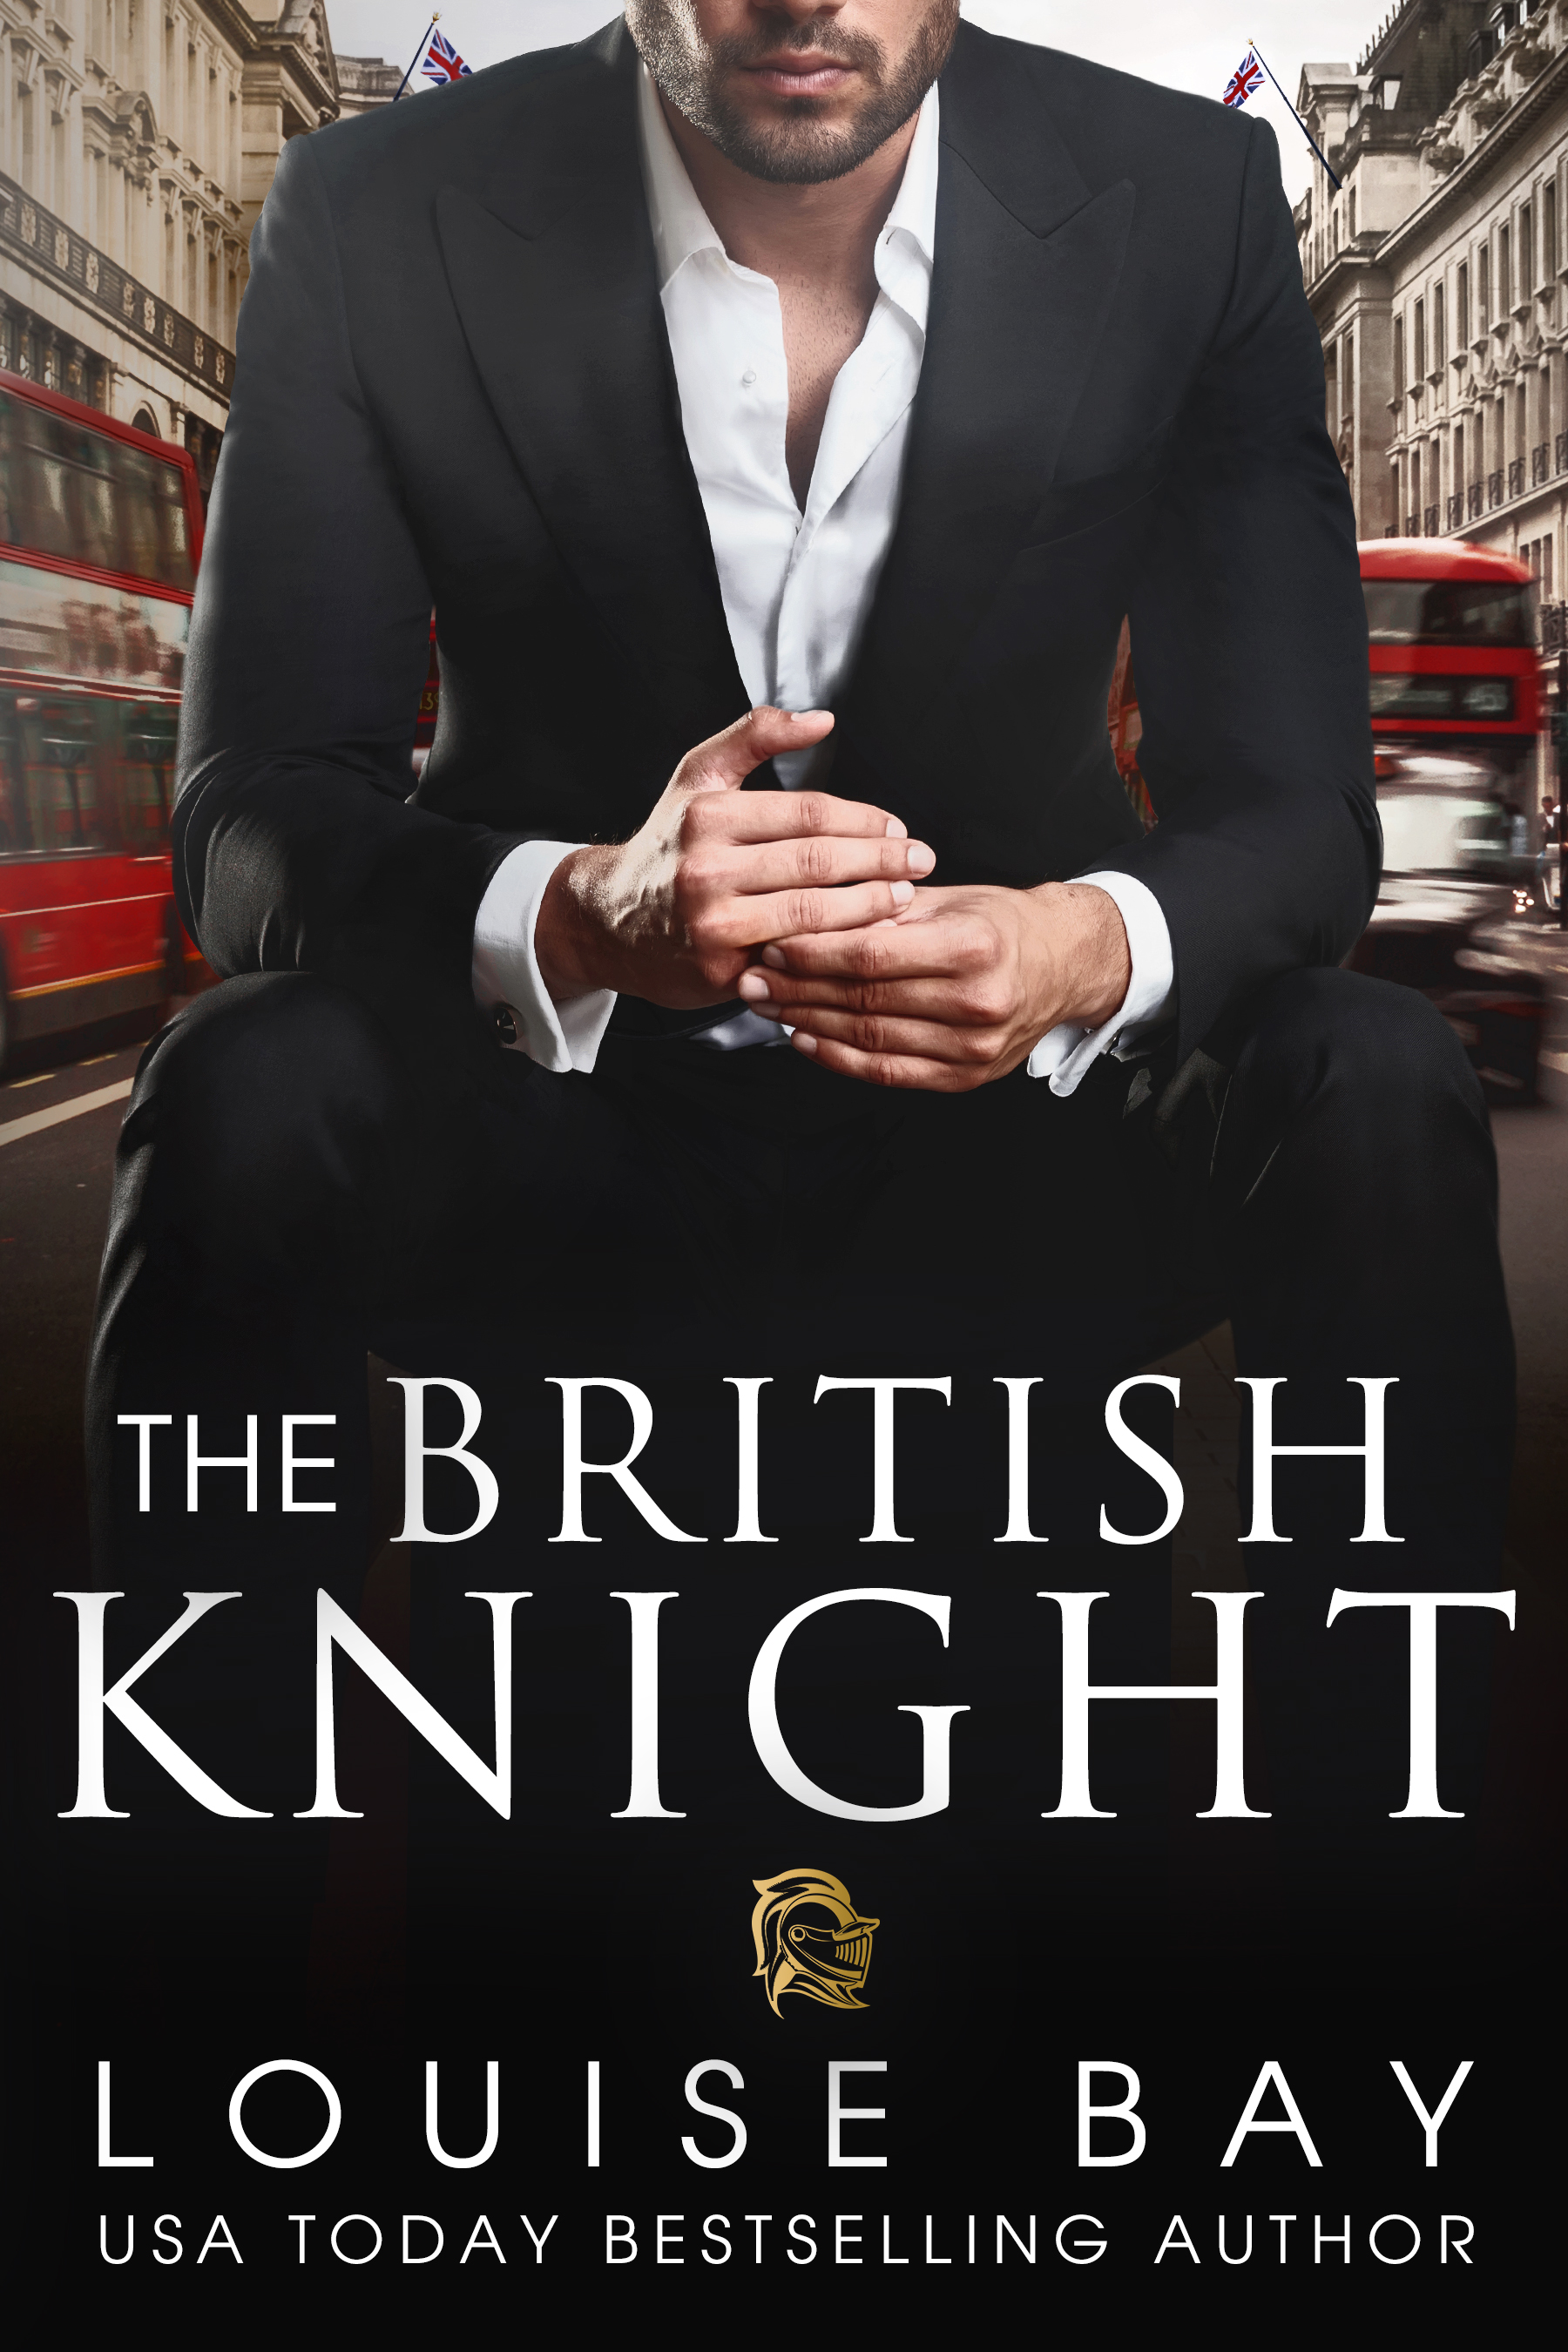 TheBritishKnight.Ebook